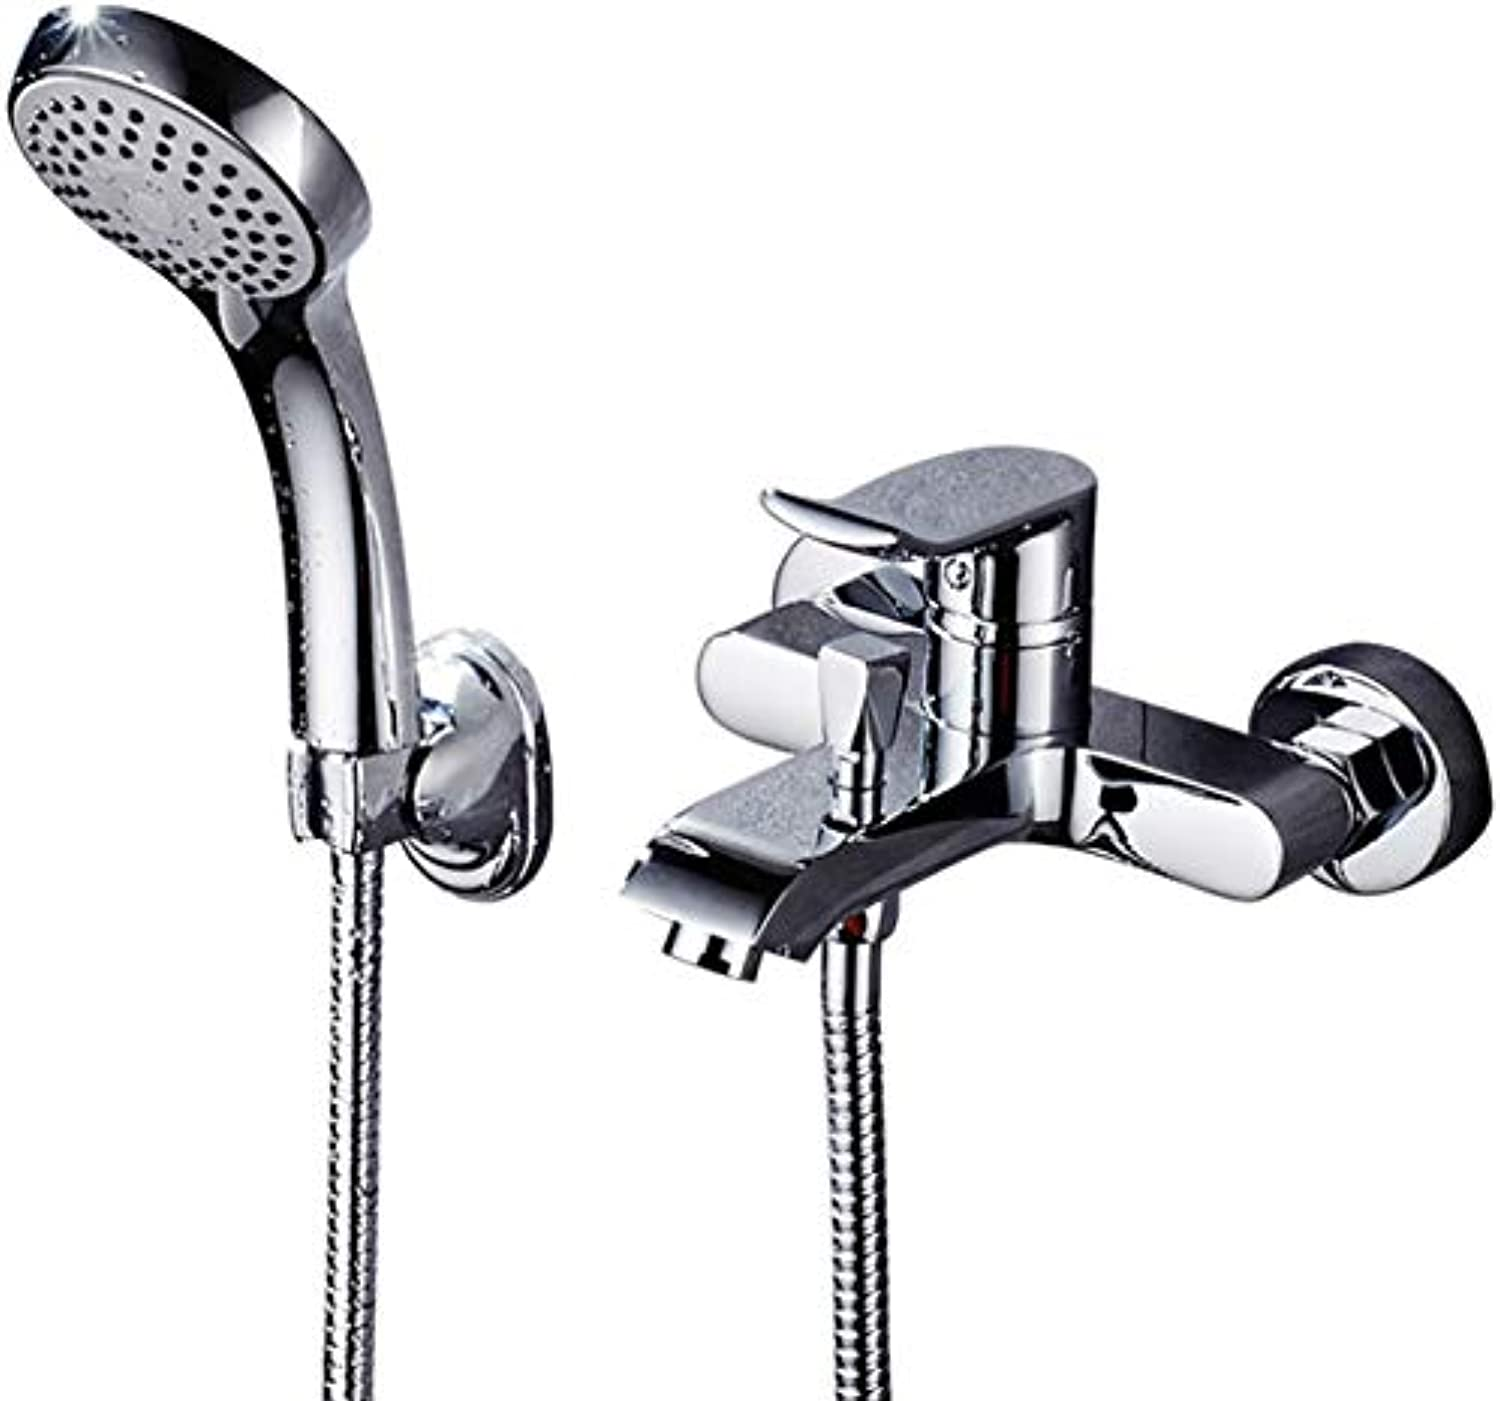 redOOY Showers Full Copper Bathtub Faucet Shower With Double Outlet With Hand Shower